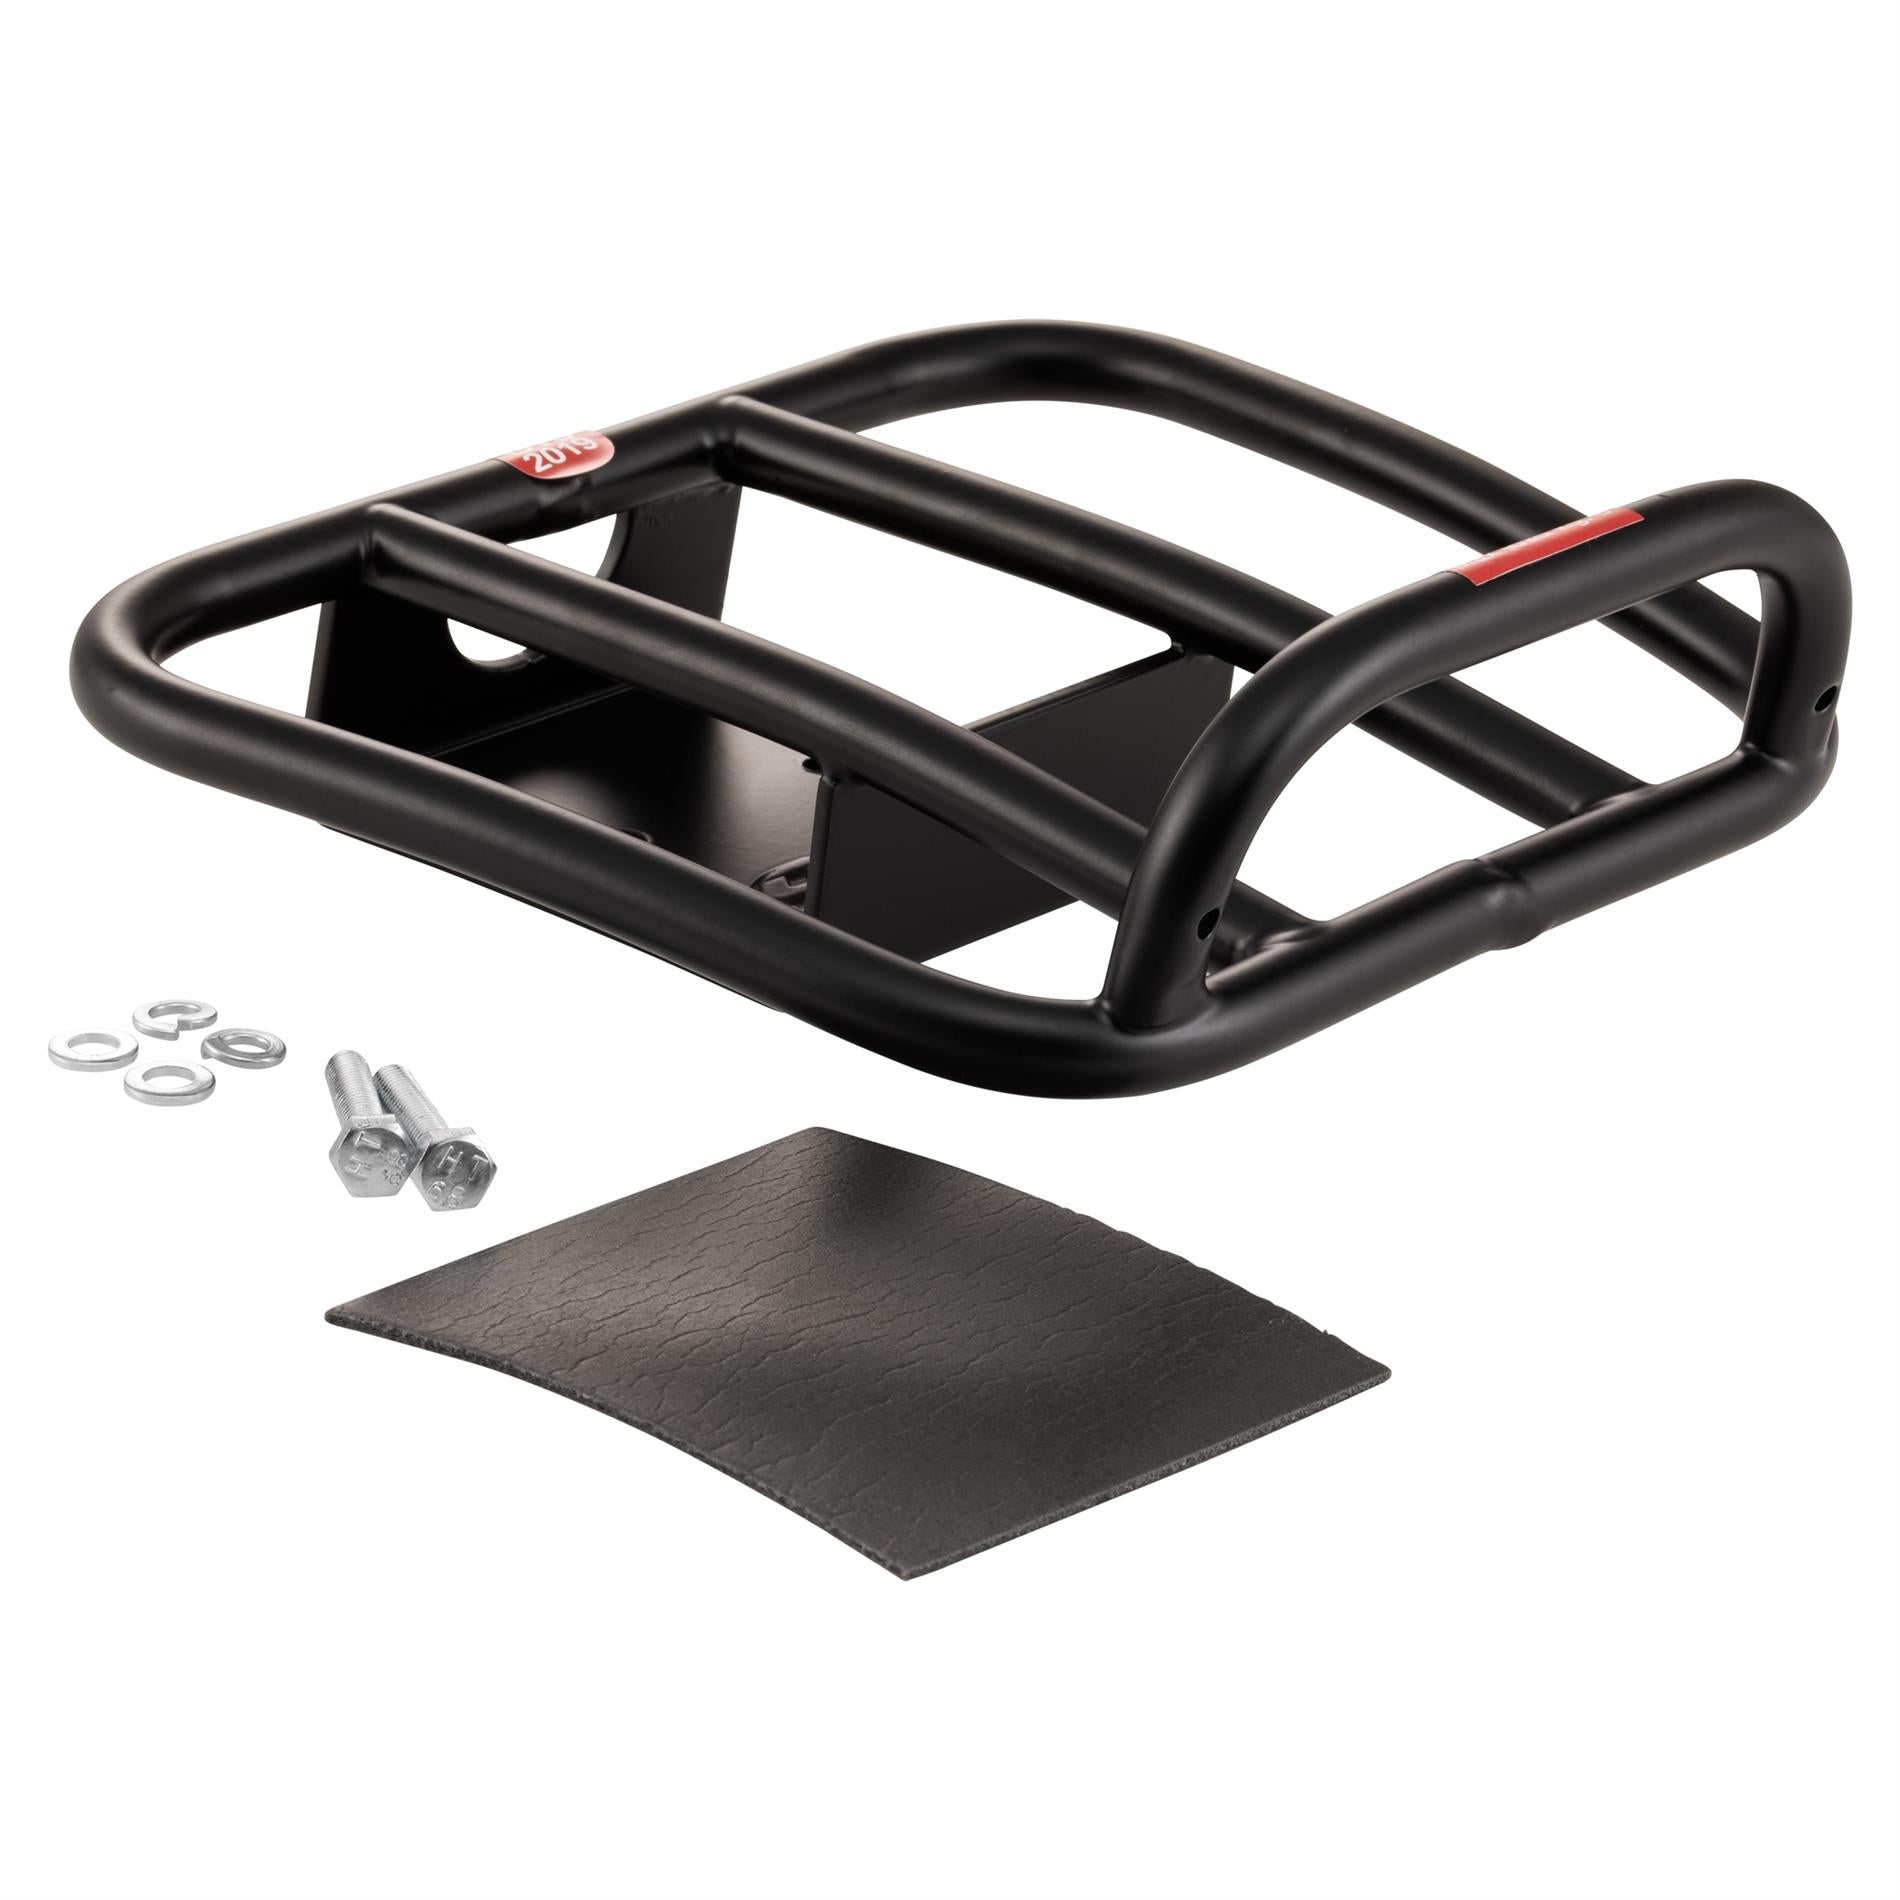 SIP 70s Sprint Rack Carrier in Matt Black - Vespa GTS HPE